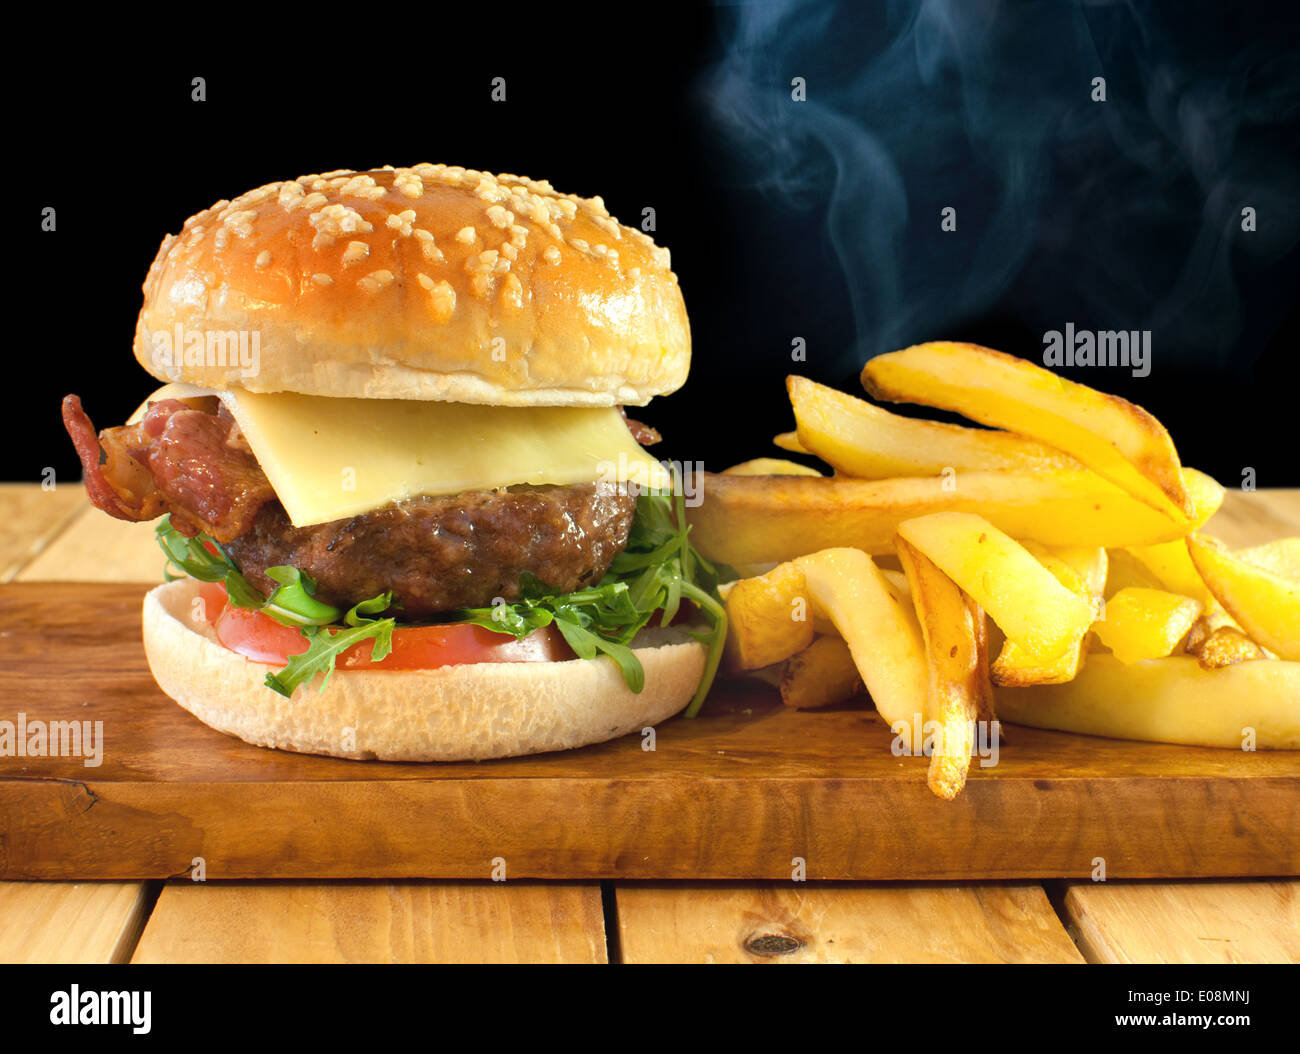 Cheese burger with french fries - Stock Image